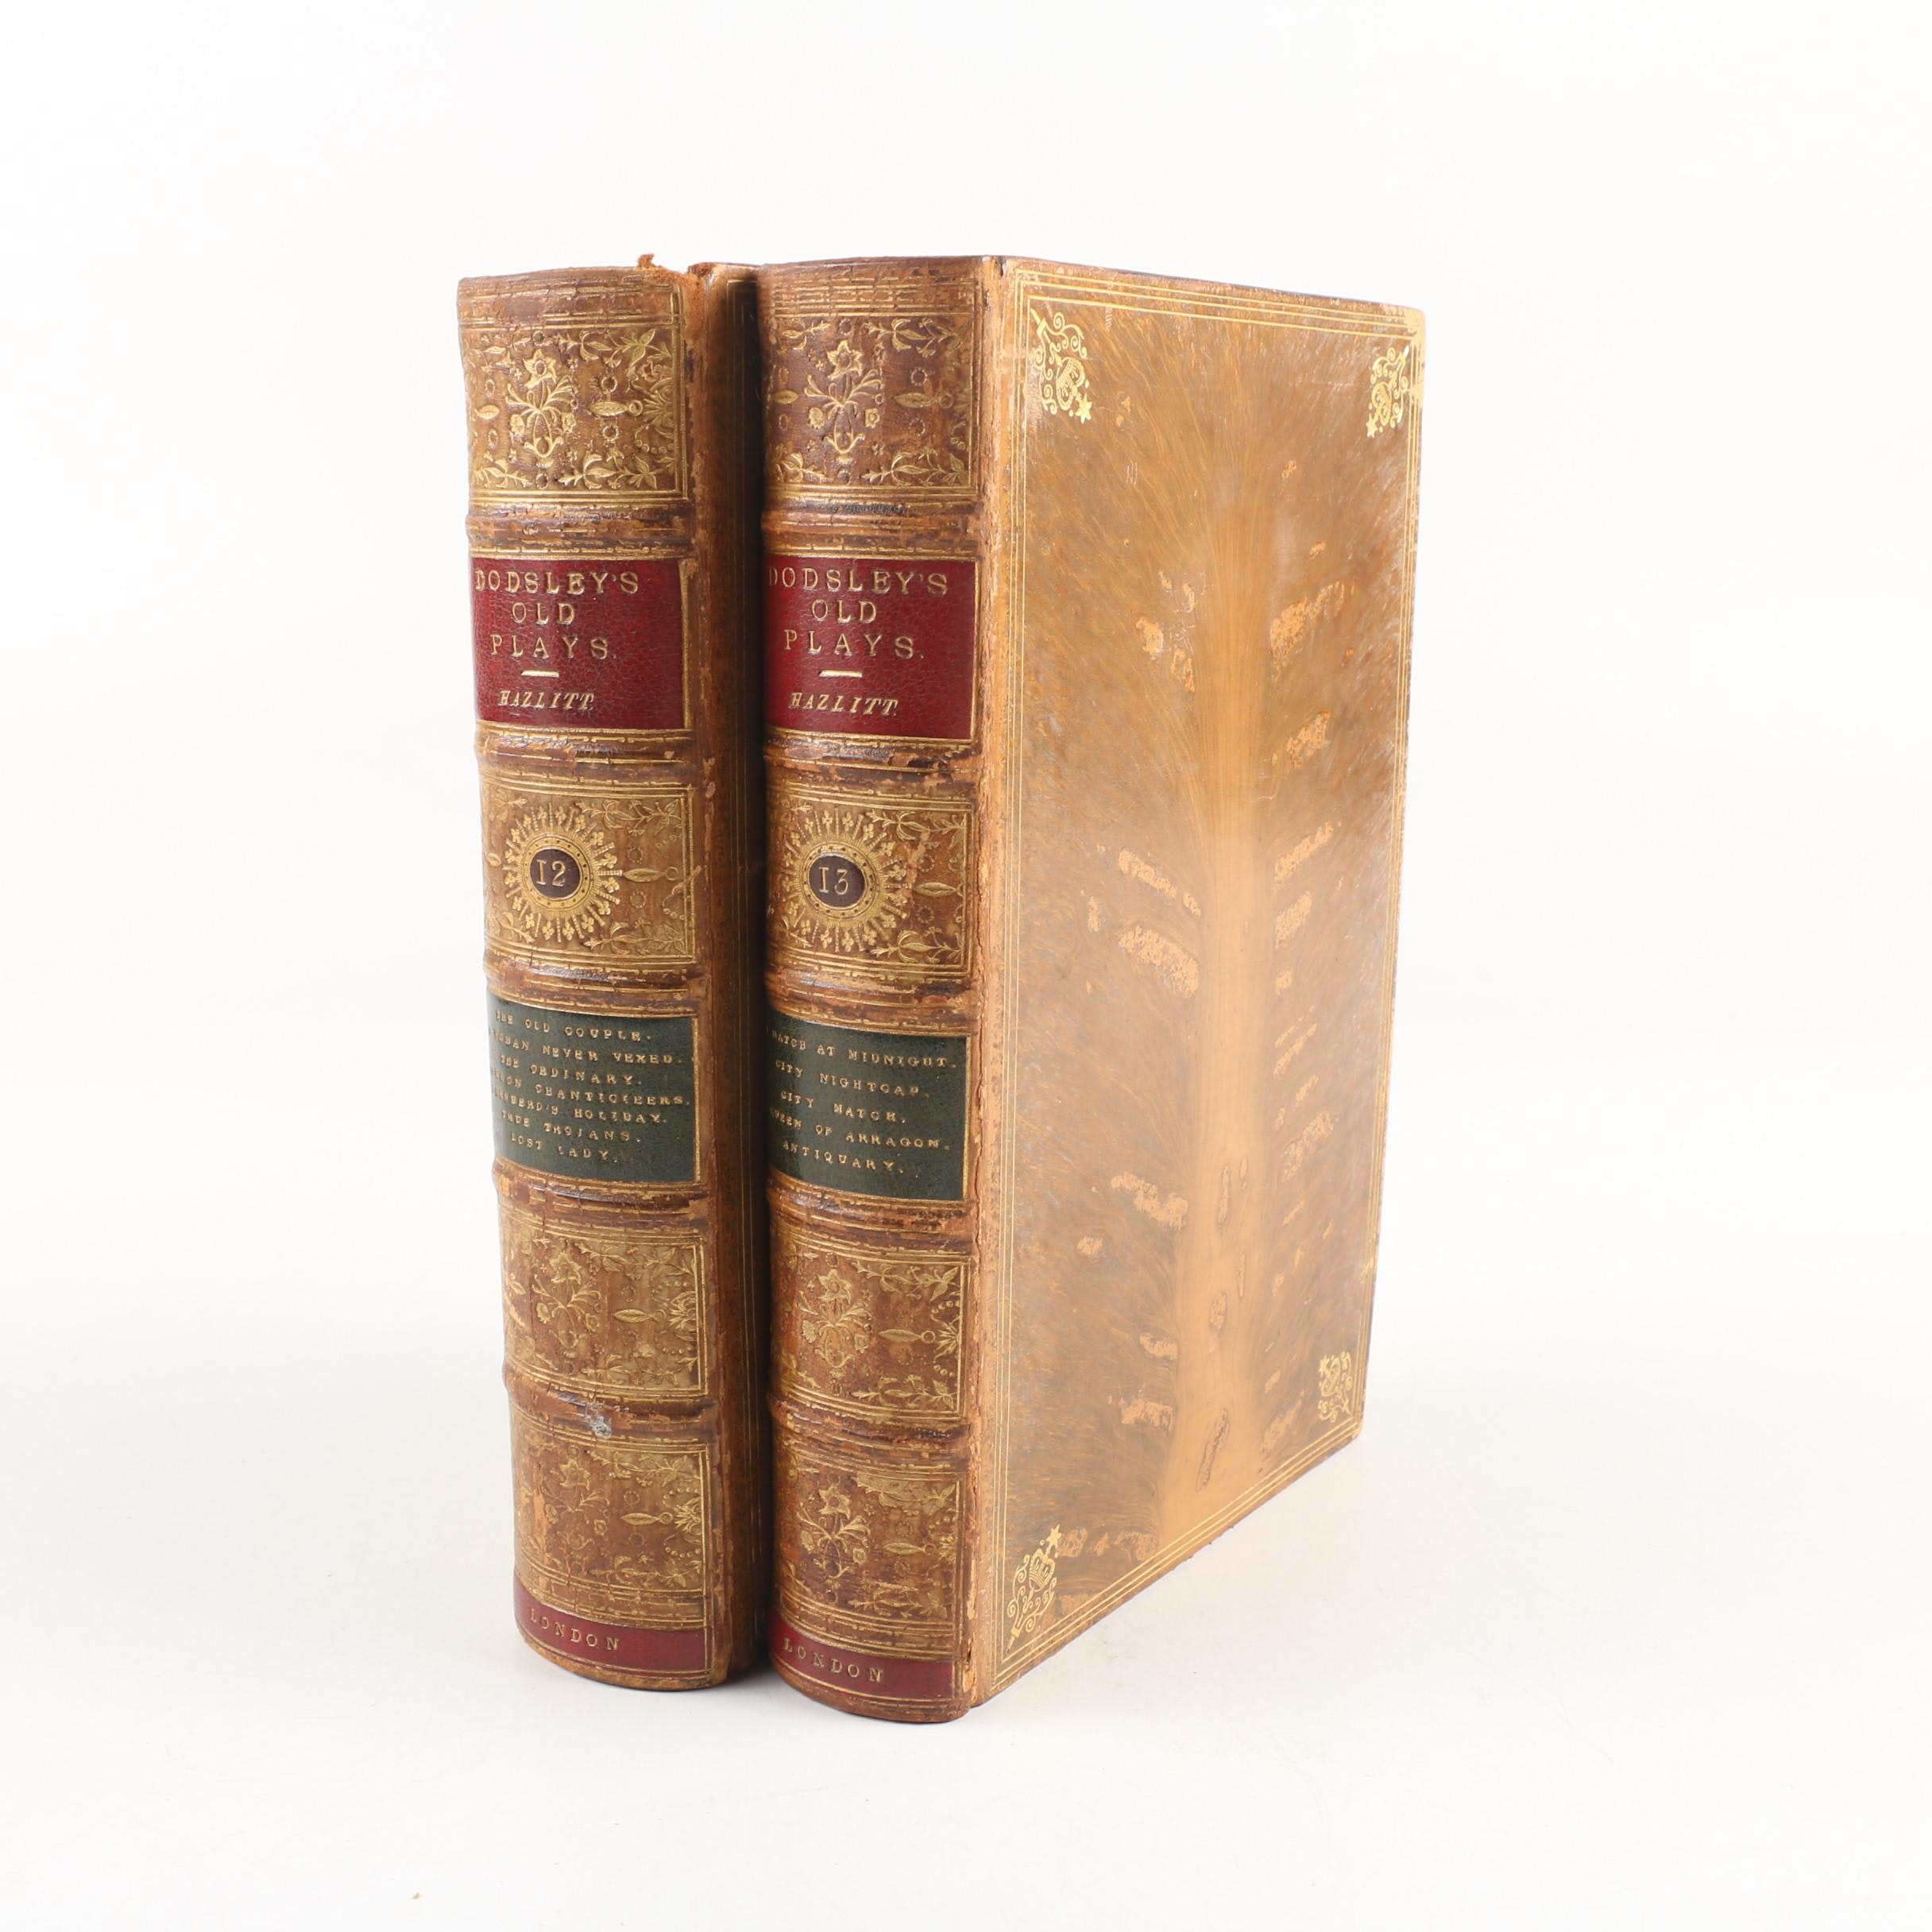 """""""A Select Collection of Old English Plays"""" by W. Carew Hazlitt, 1875"""